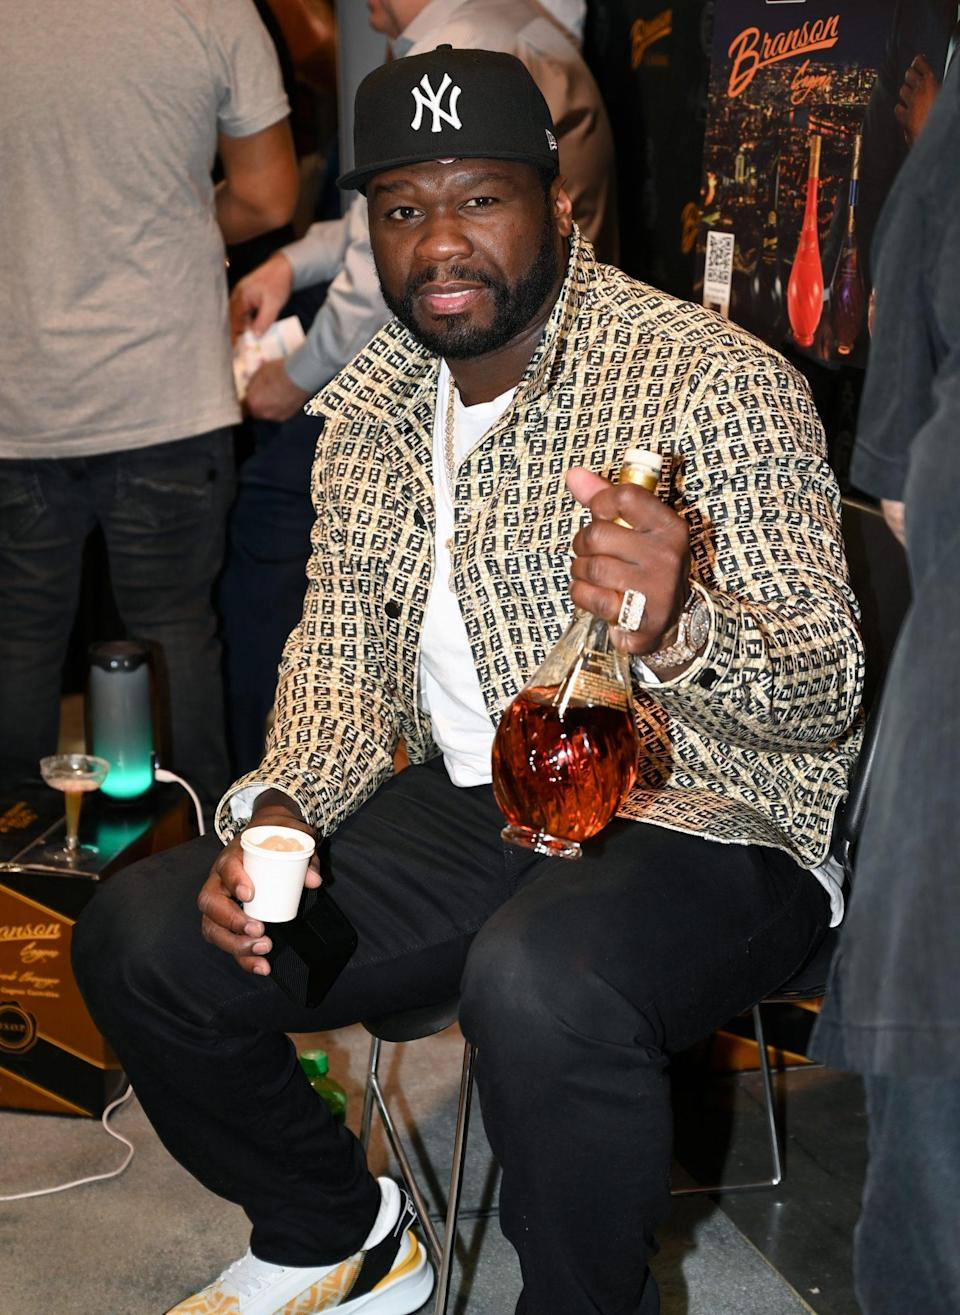 <p>50 Cent poses at the Branson Cognac booth during day 2 of the 35th Annual Nightclub & Bar Show and World Tea Expo at the Las Vegas Convention Center on June 29.</p>